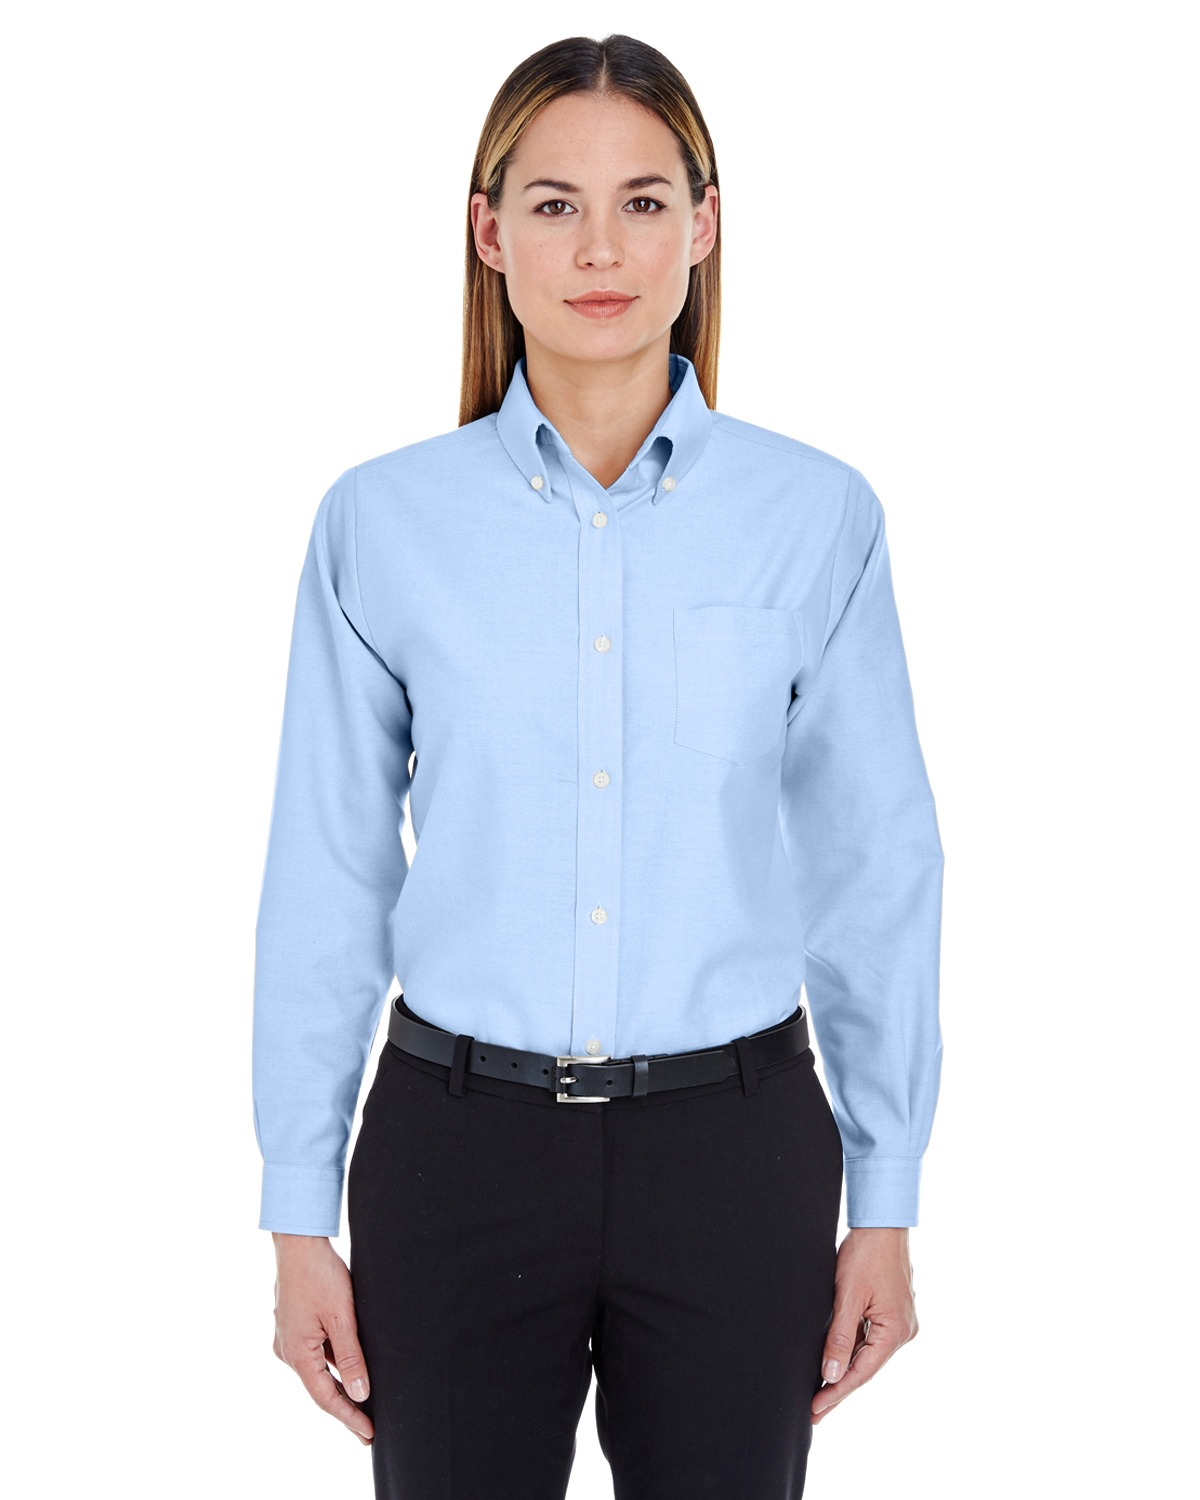 UltraClub 8990 Women Classic Wrinkle Free LongSleeve Oxford at GotApparel